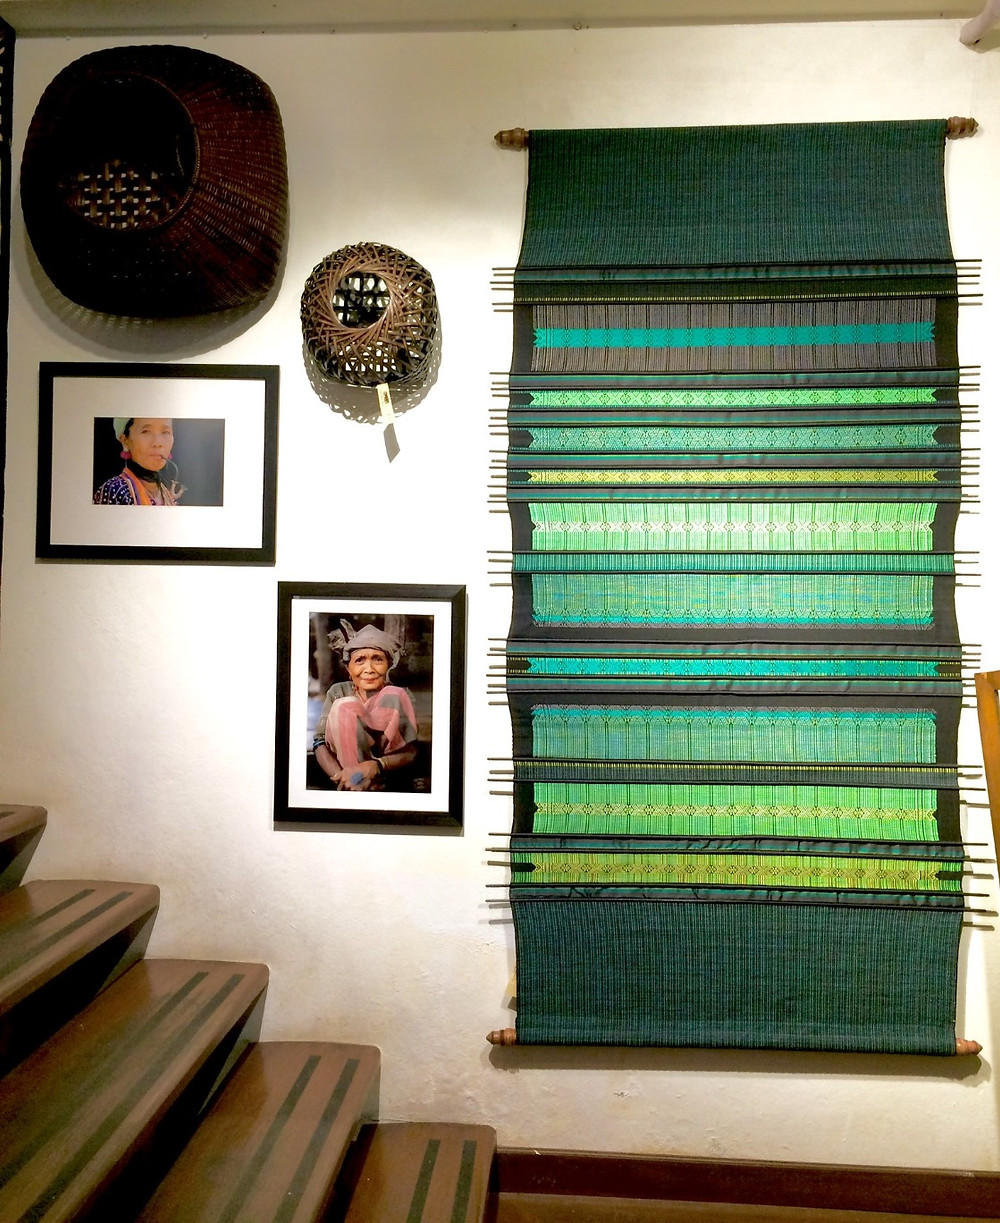 Sop Moei Arts in Chang Mai. Hand woven textiles, baskets and more.